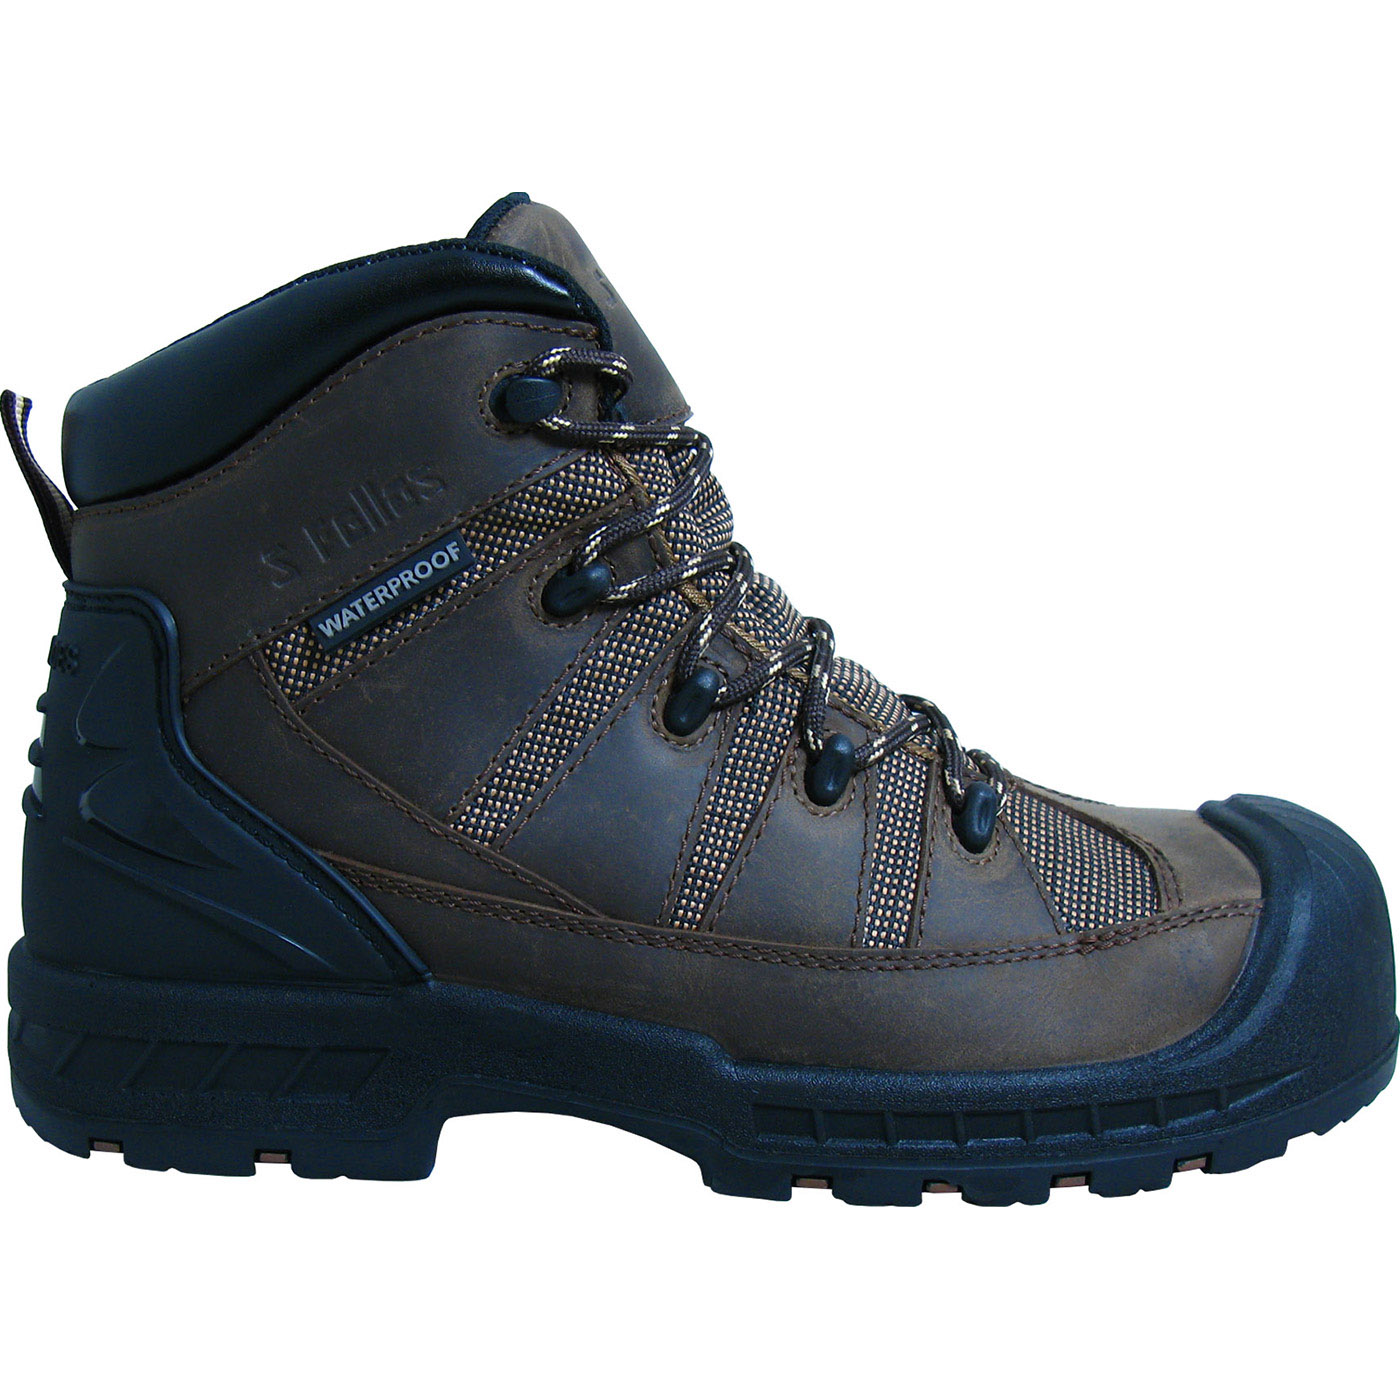 e038fbb6c6a S Fellas by Genuine Grip Trekker Men s 6 inch Composite Toe Puncture  Resistant Waterproof Work HikerS Fellas by Genuine Grip Trekker Men s 6  inch Composite ...